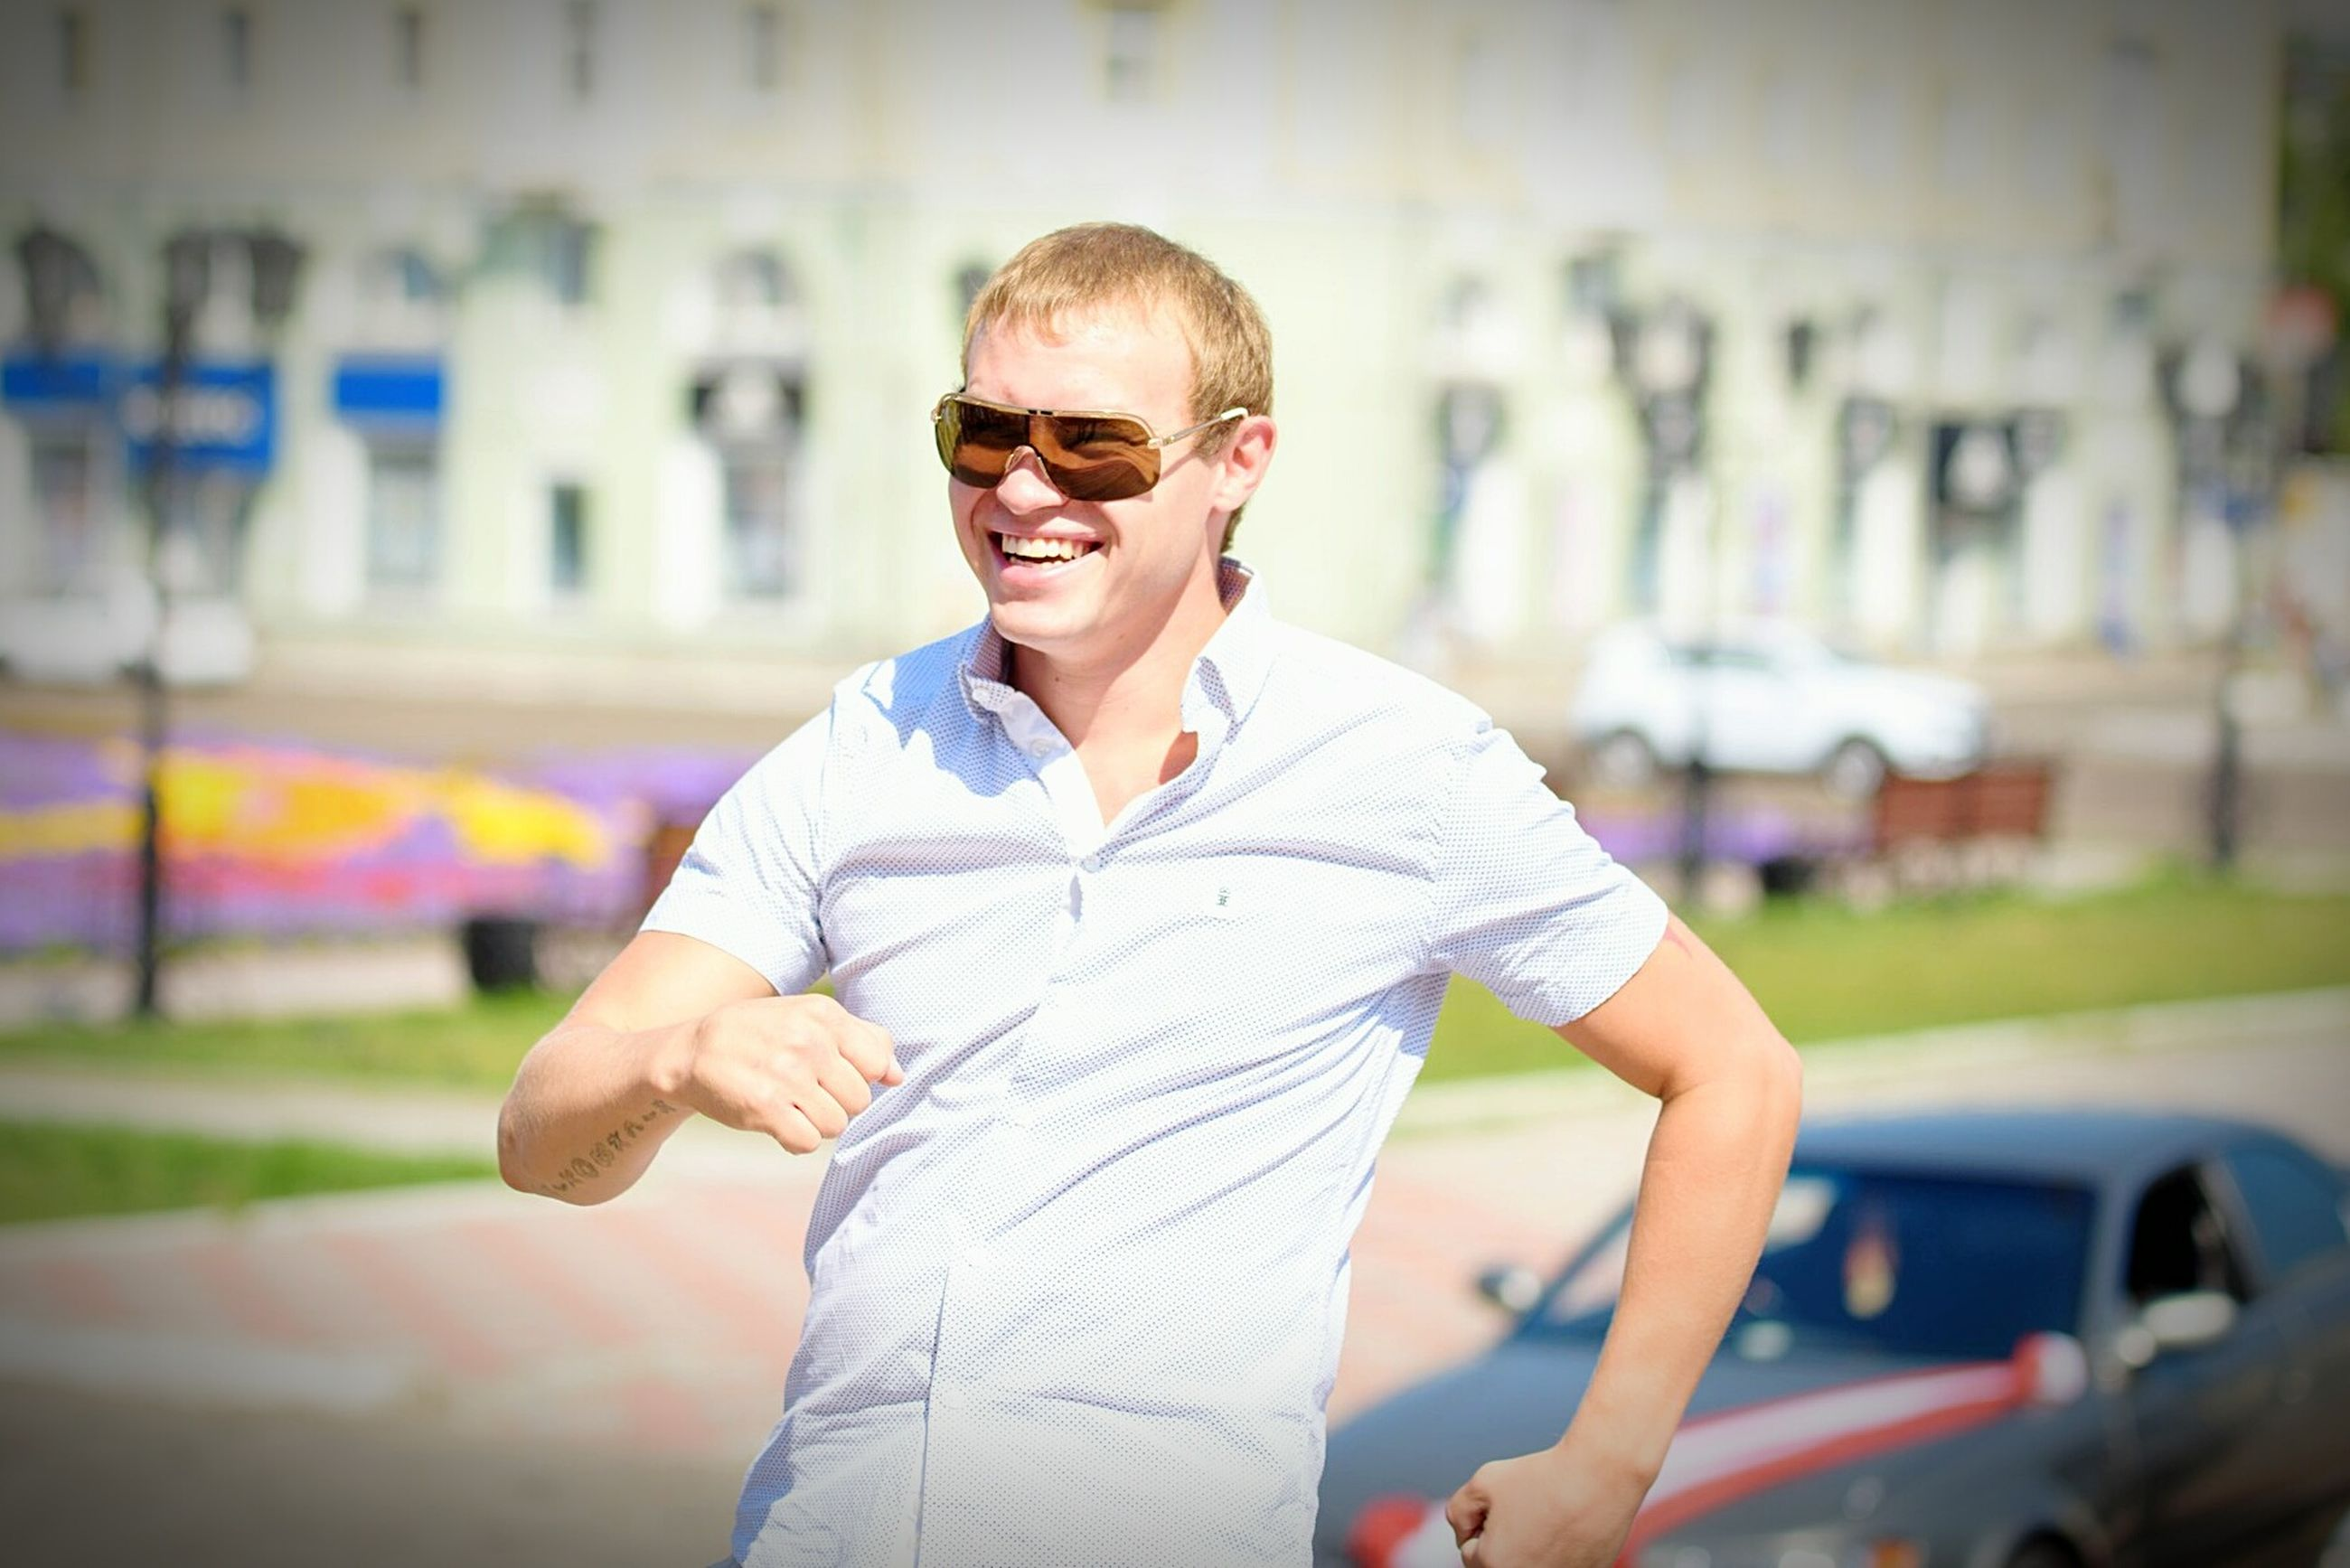 lifestyles, casual clothing, person, young men, young adult, focus on foreground, looking at camera, leisure activity, front view, portrait, waist up, sunglasses, building exterior, smiling, holding, three quarter length, standing, built structure